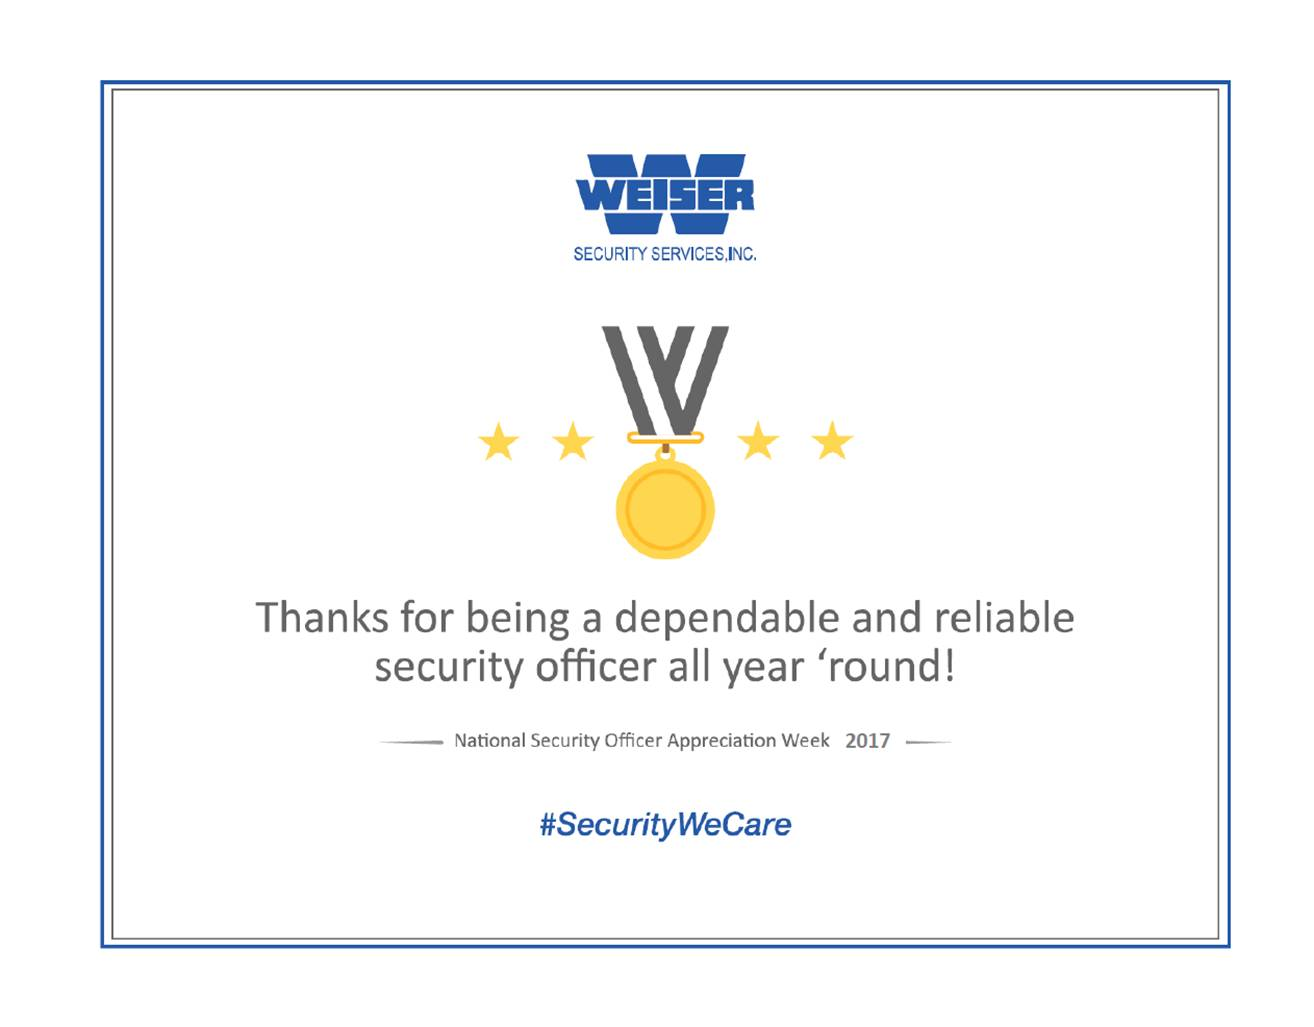 National Security Officer Week Sept 17  23 2017  Weiser Security Services Inc